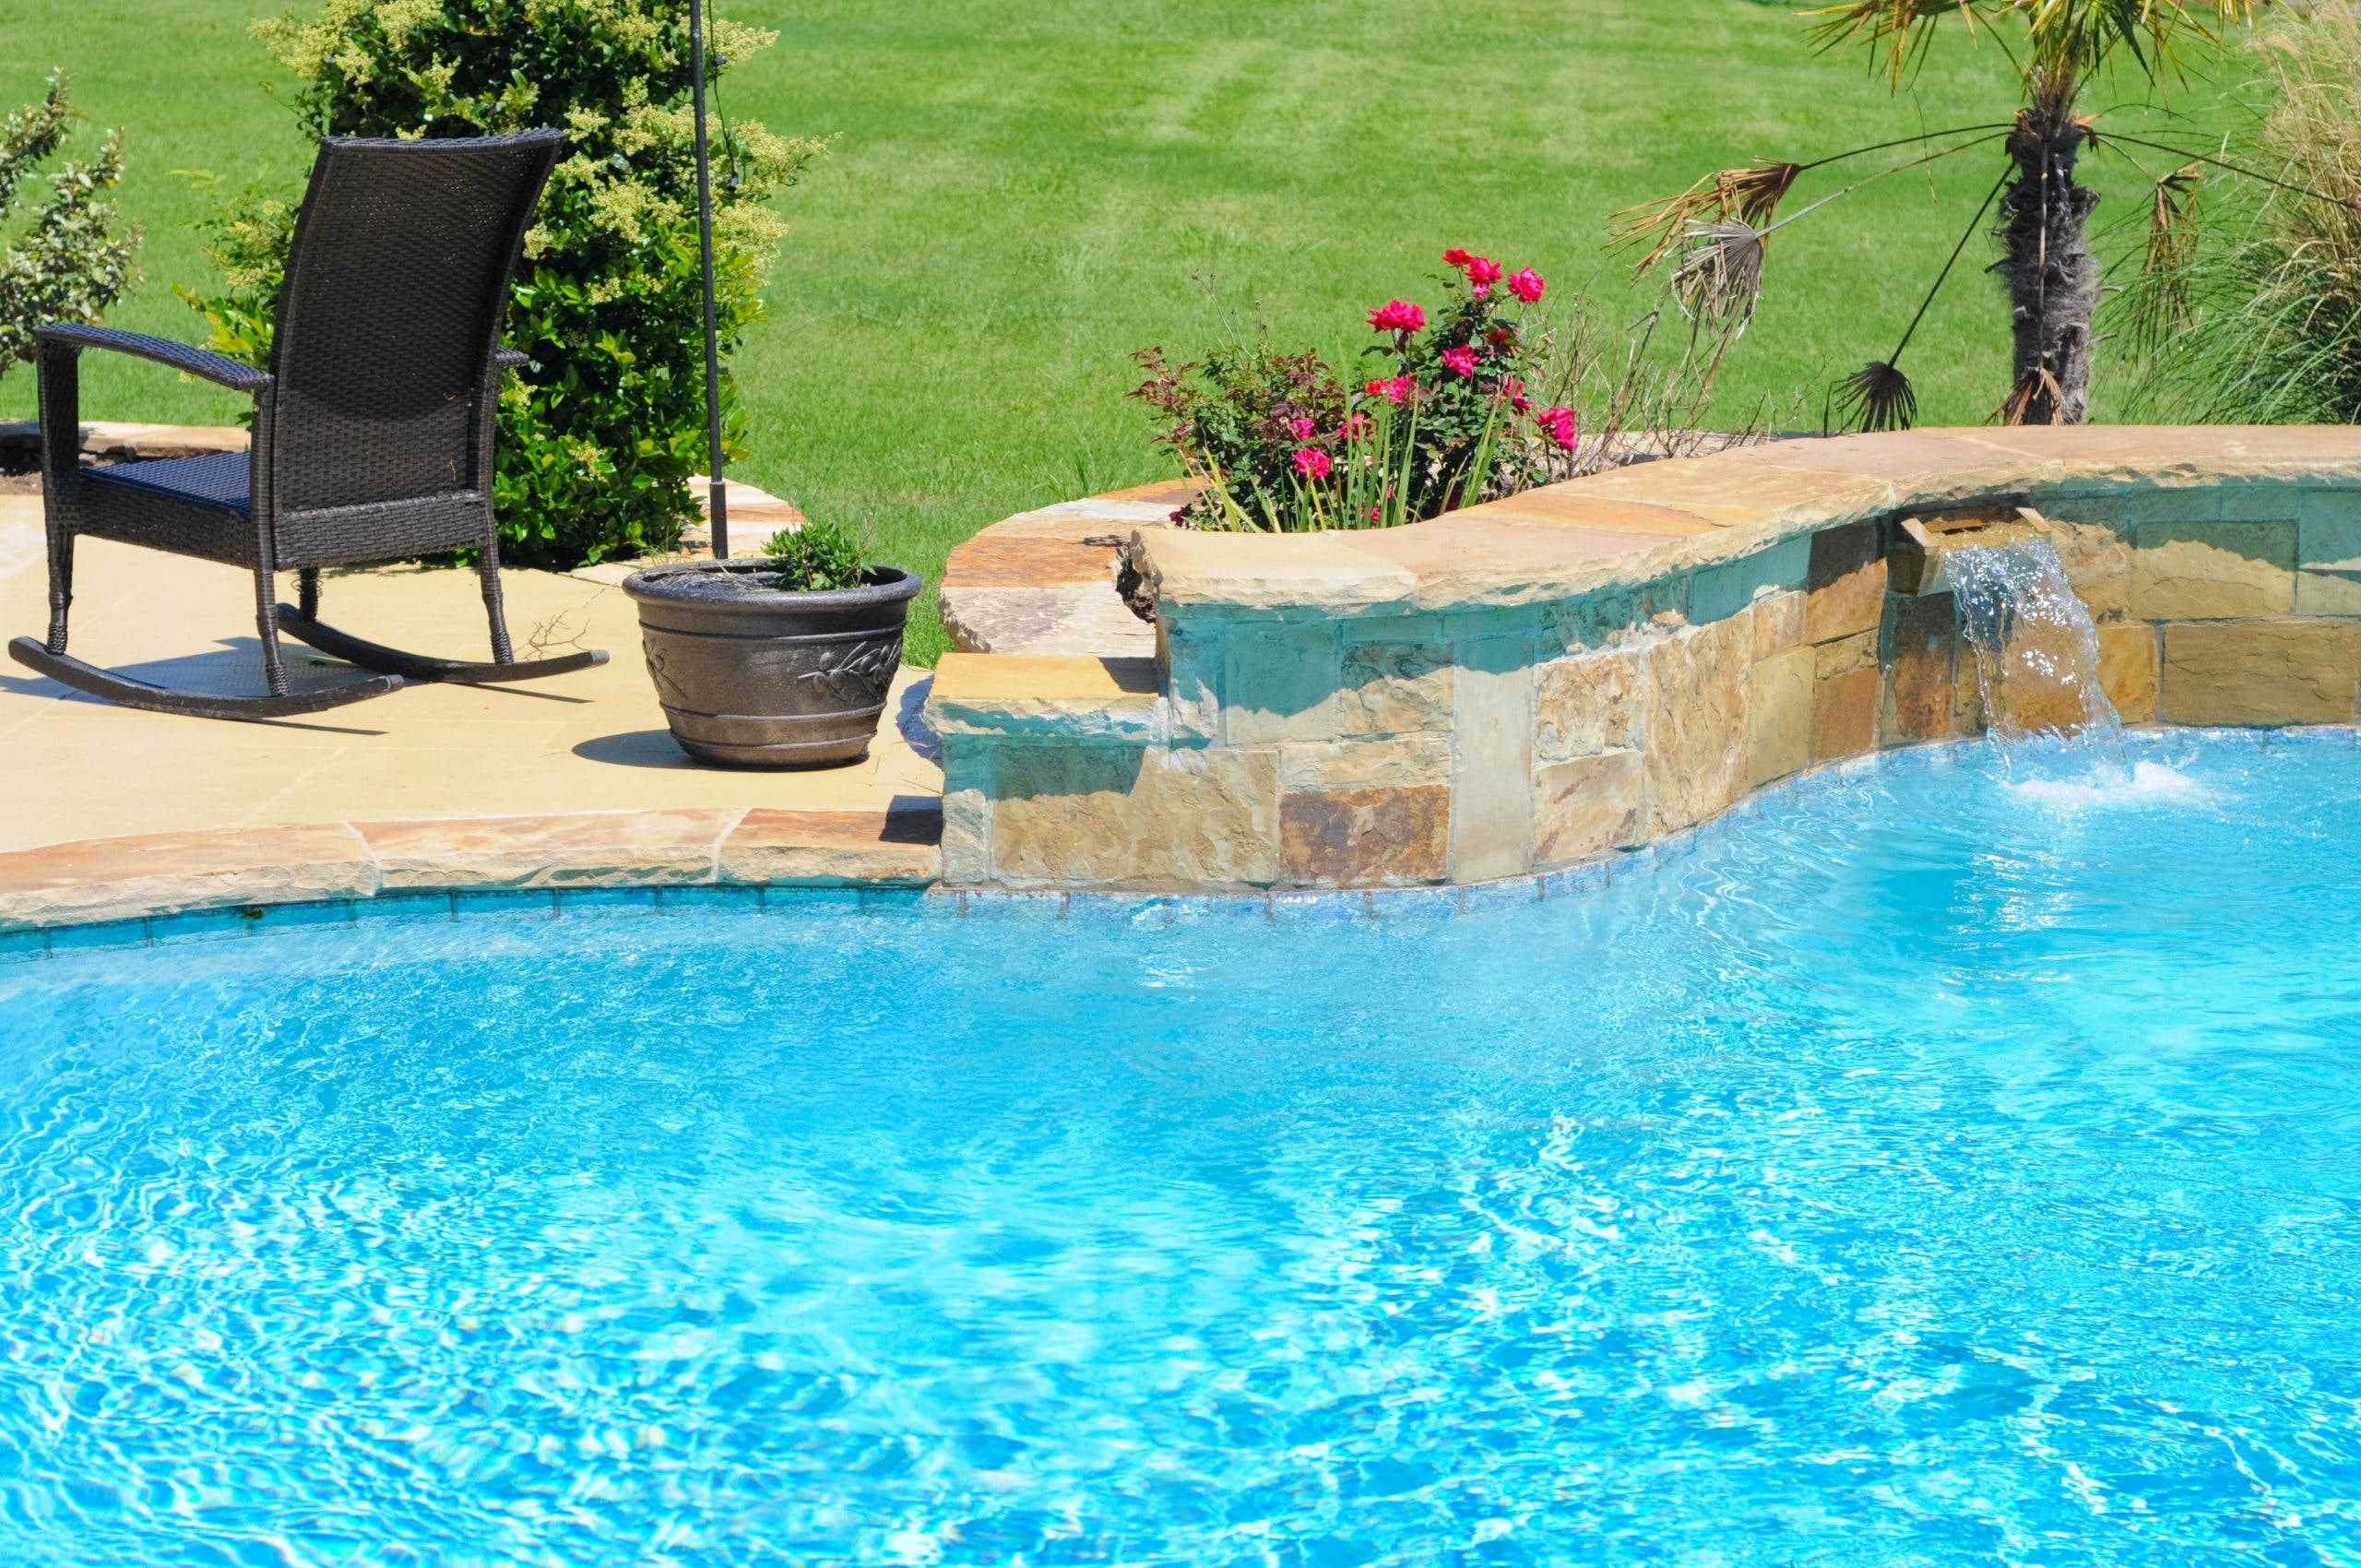 Residential Septic Advice for Homes with Pools